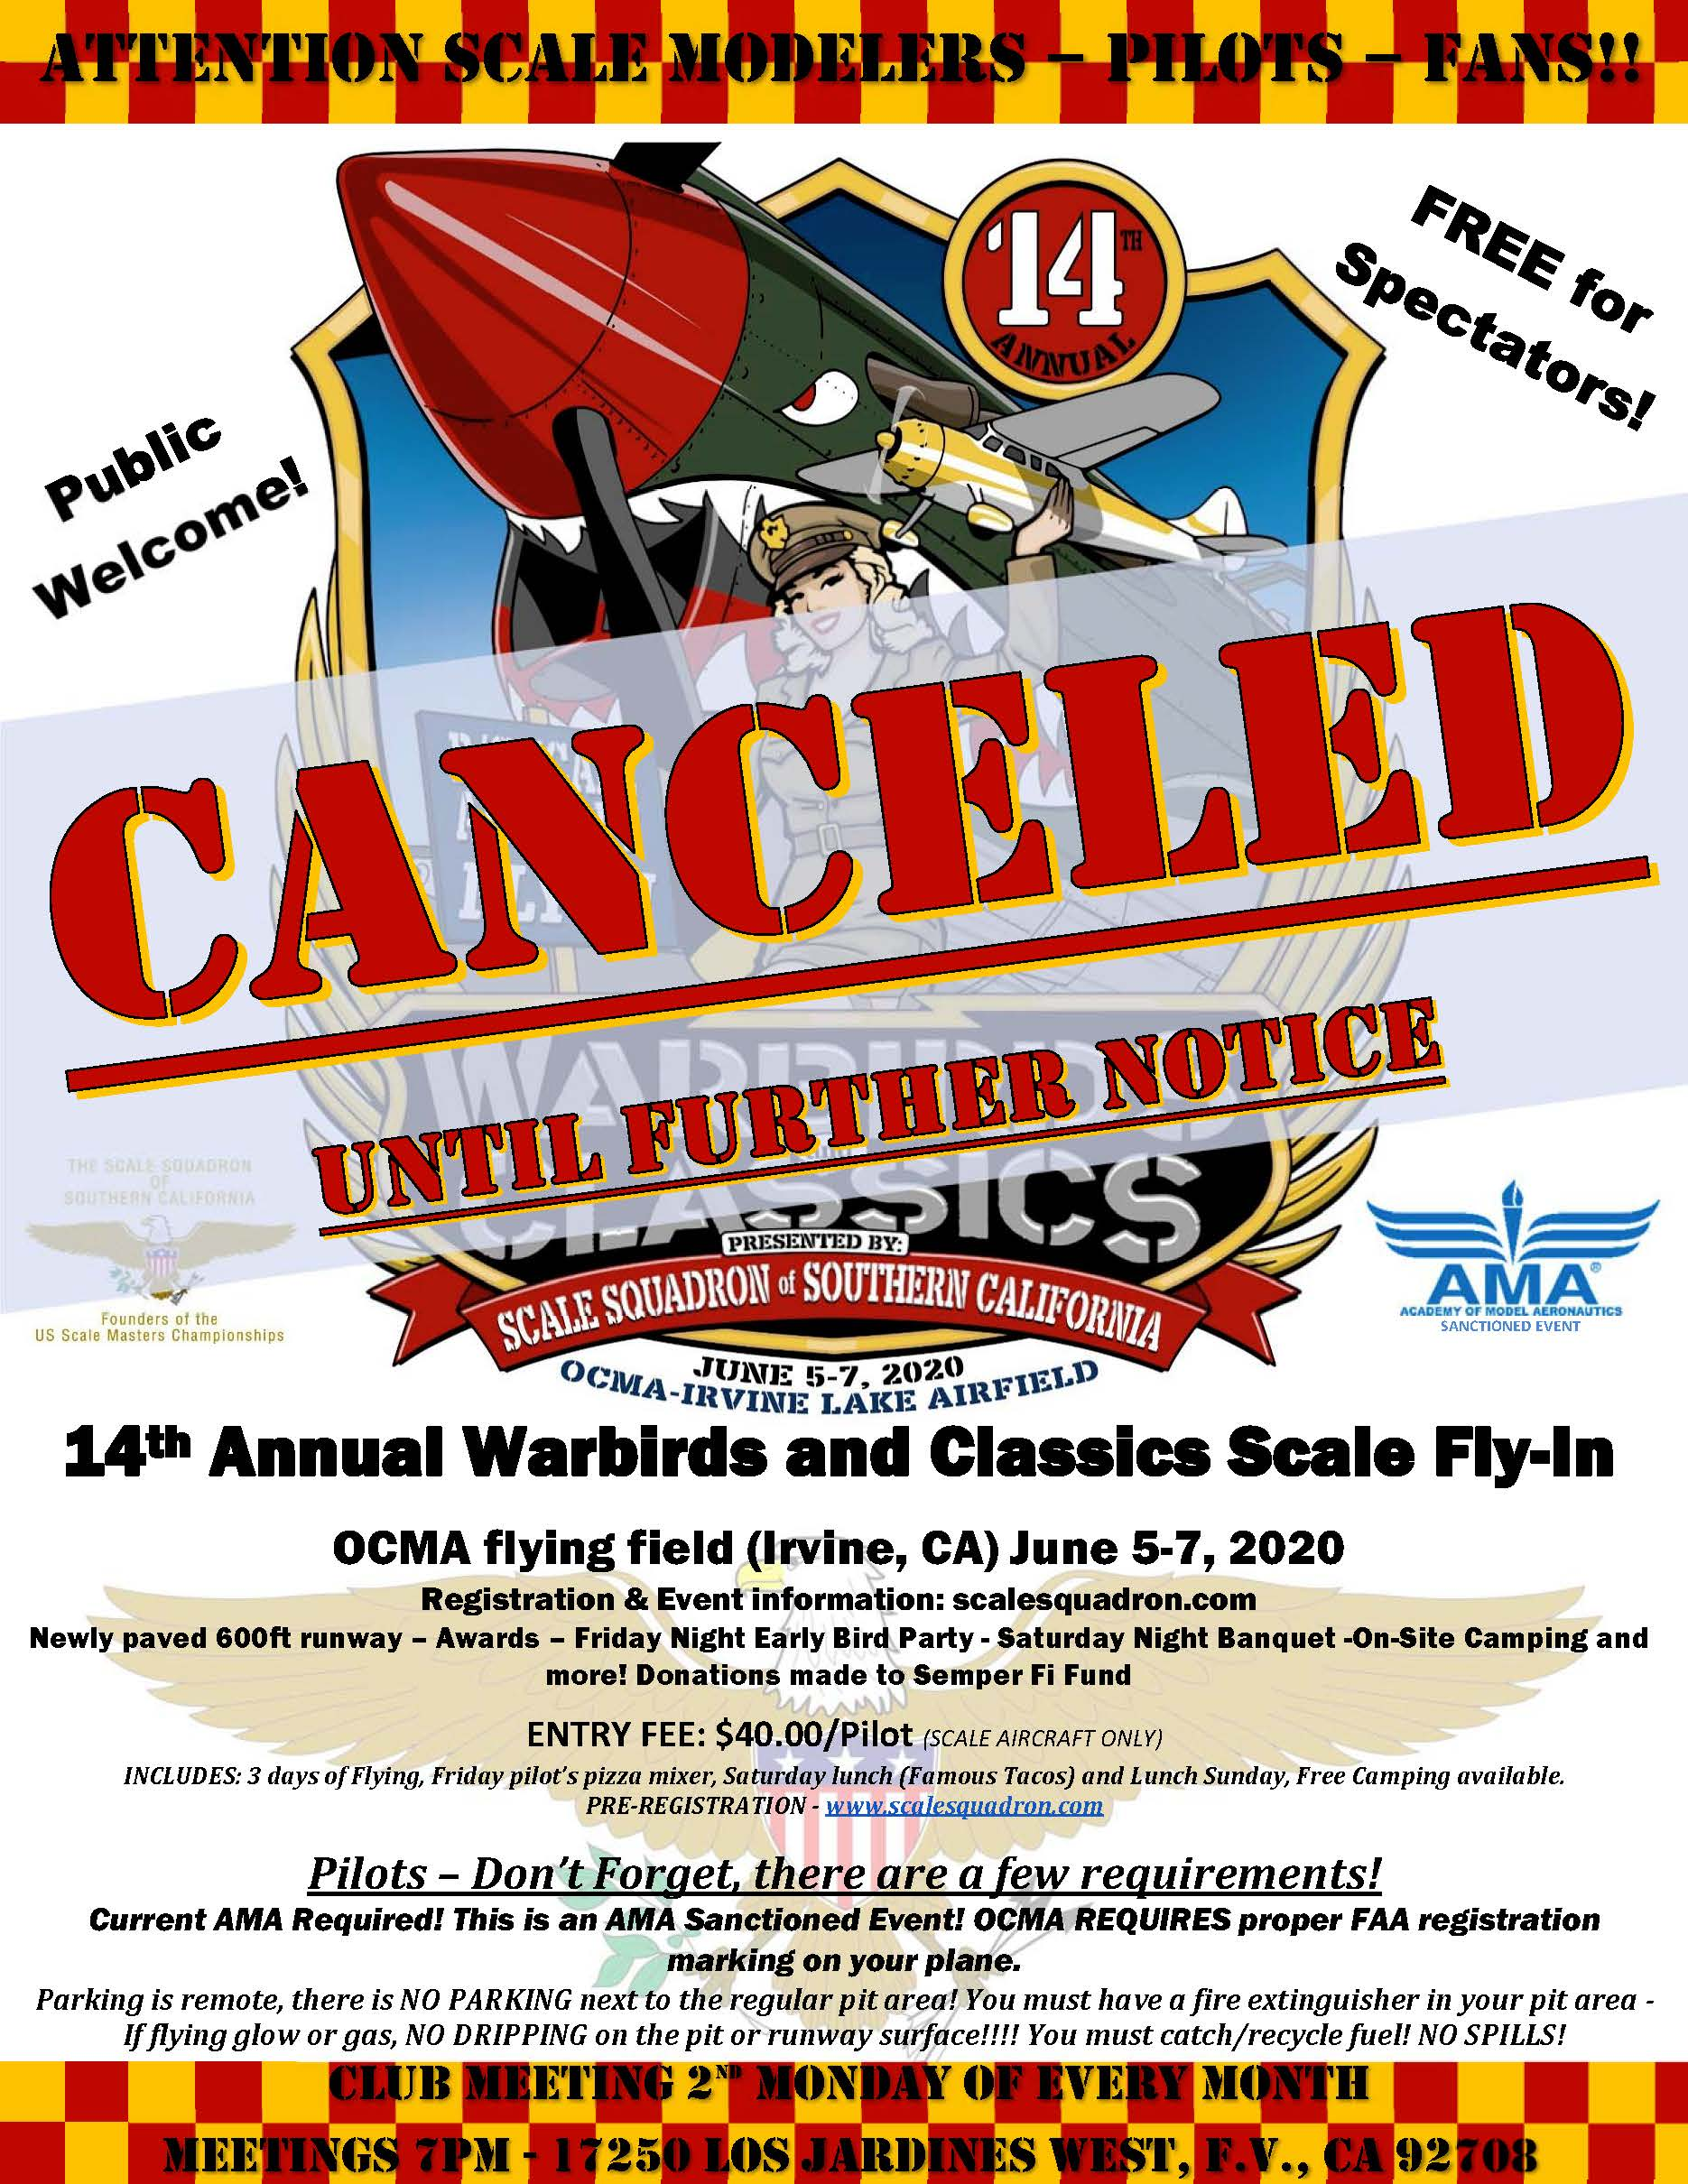 2020 warbirds cancelled